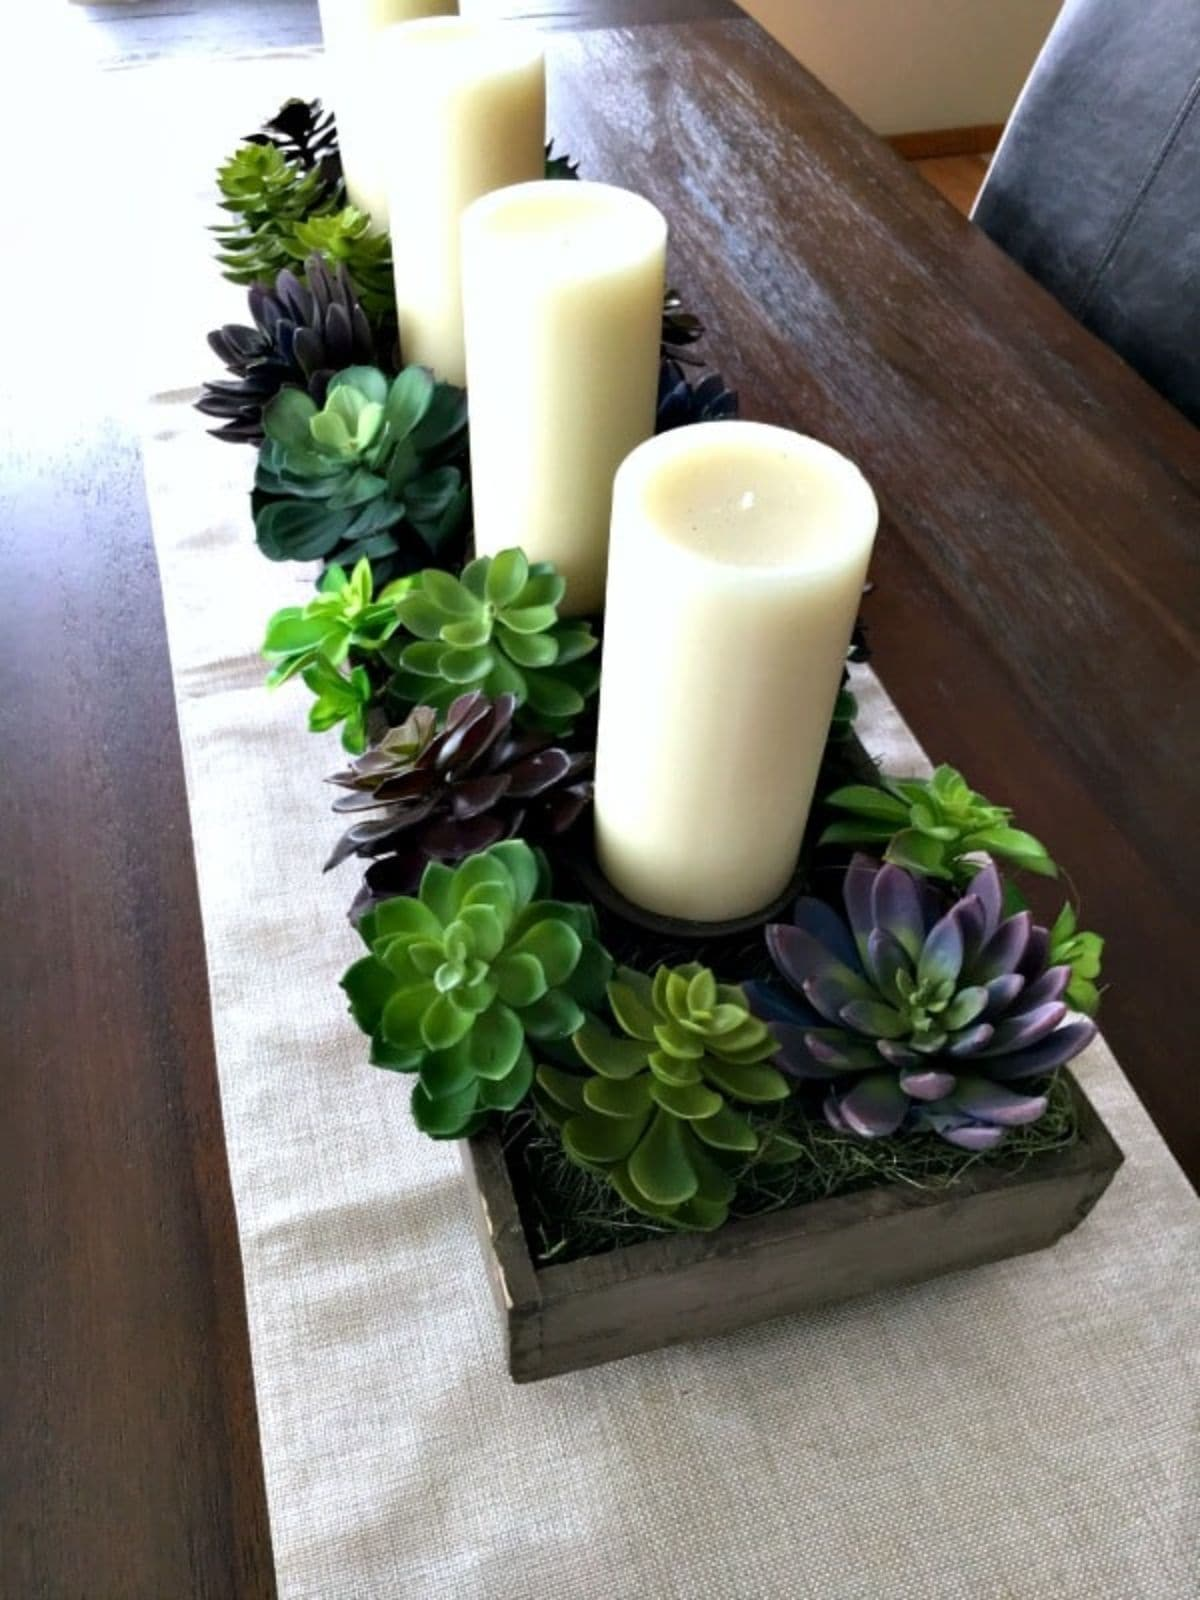 Sitting on a wooden table and a white table runner are 3 church candles surrounded with green wreaths